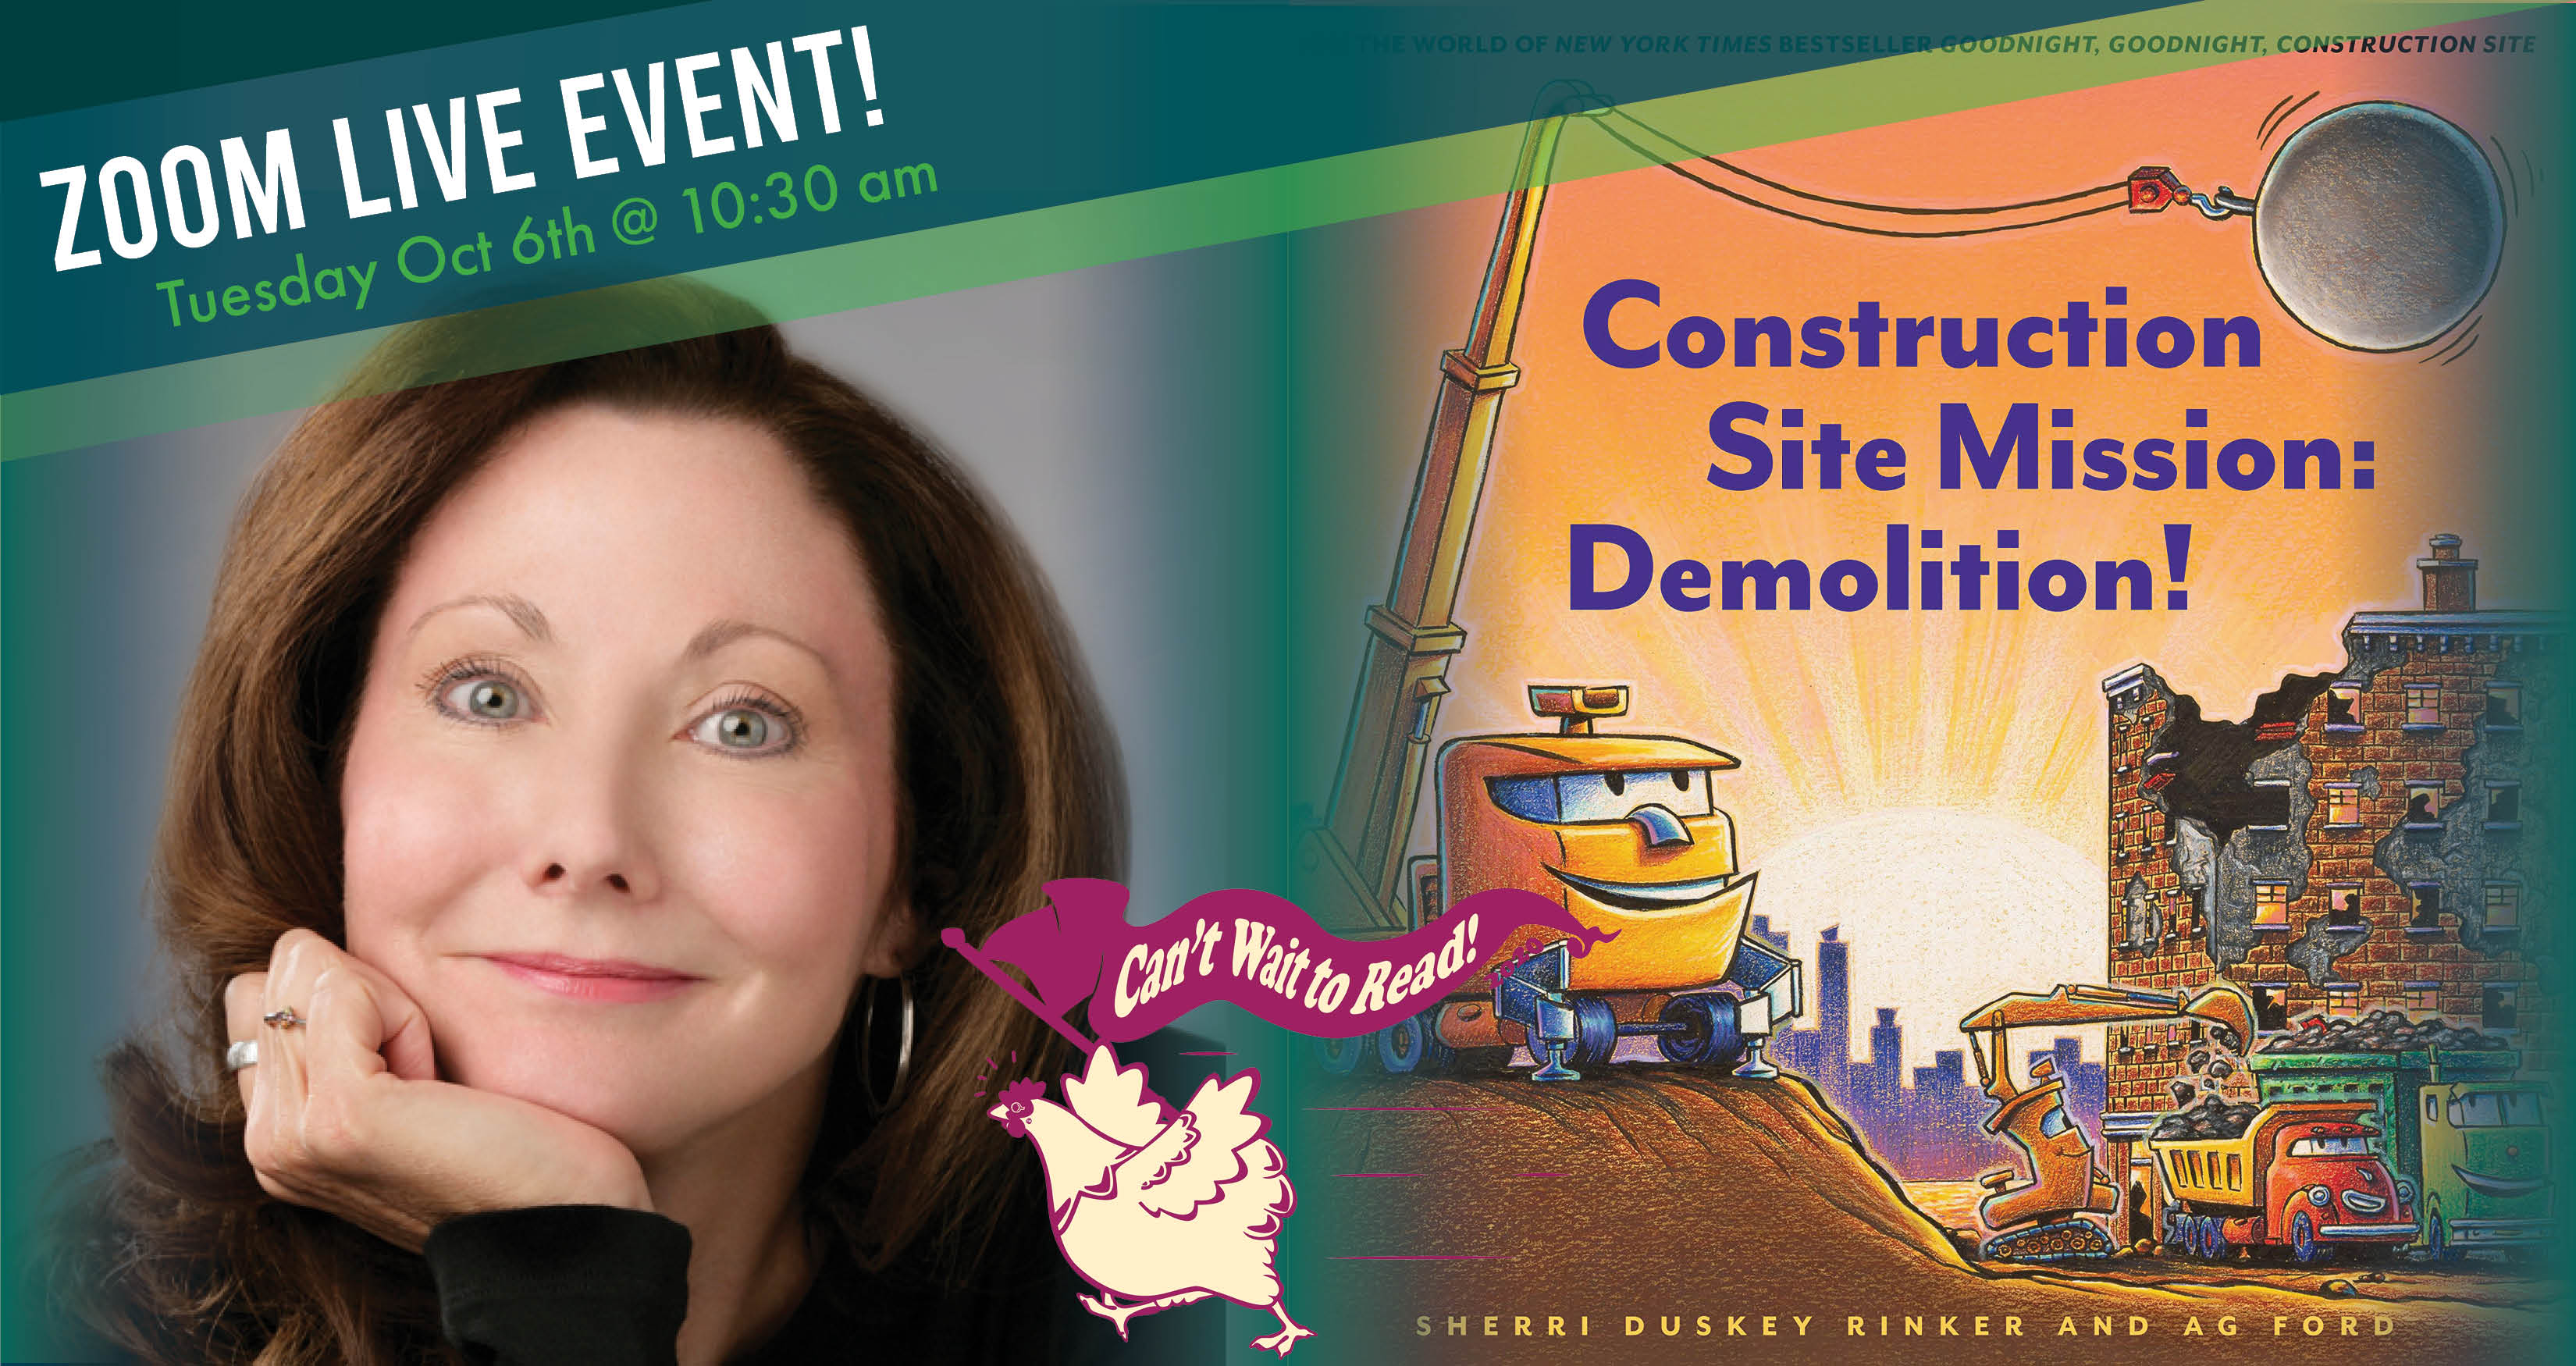 Construction Site Mission: Demolition! - Sherri Duskey Rinker